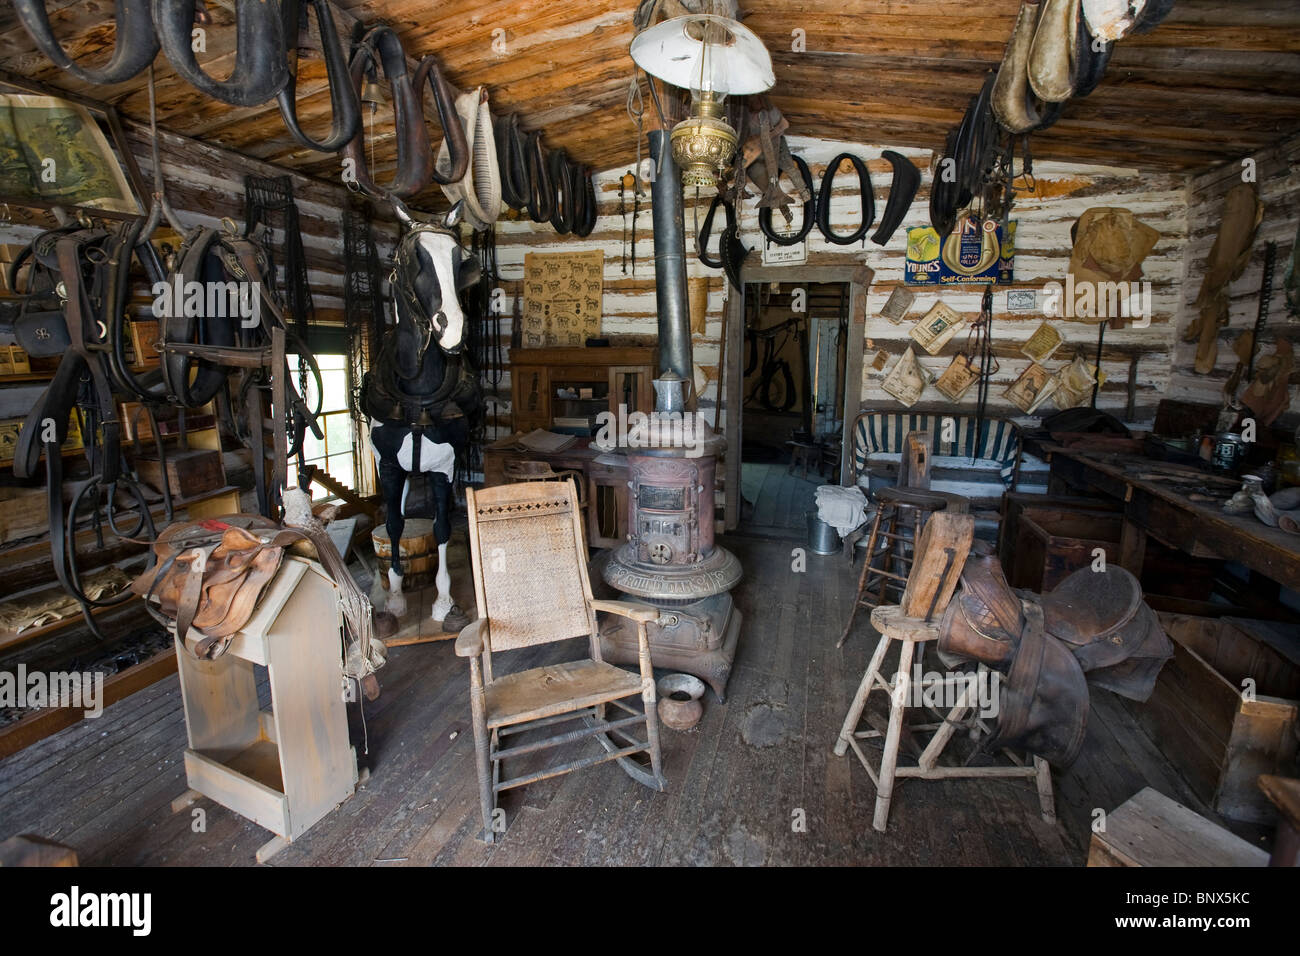 Nevada City Montana Ghost Town Museum Outdoors Stock Photo Alamy